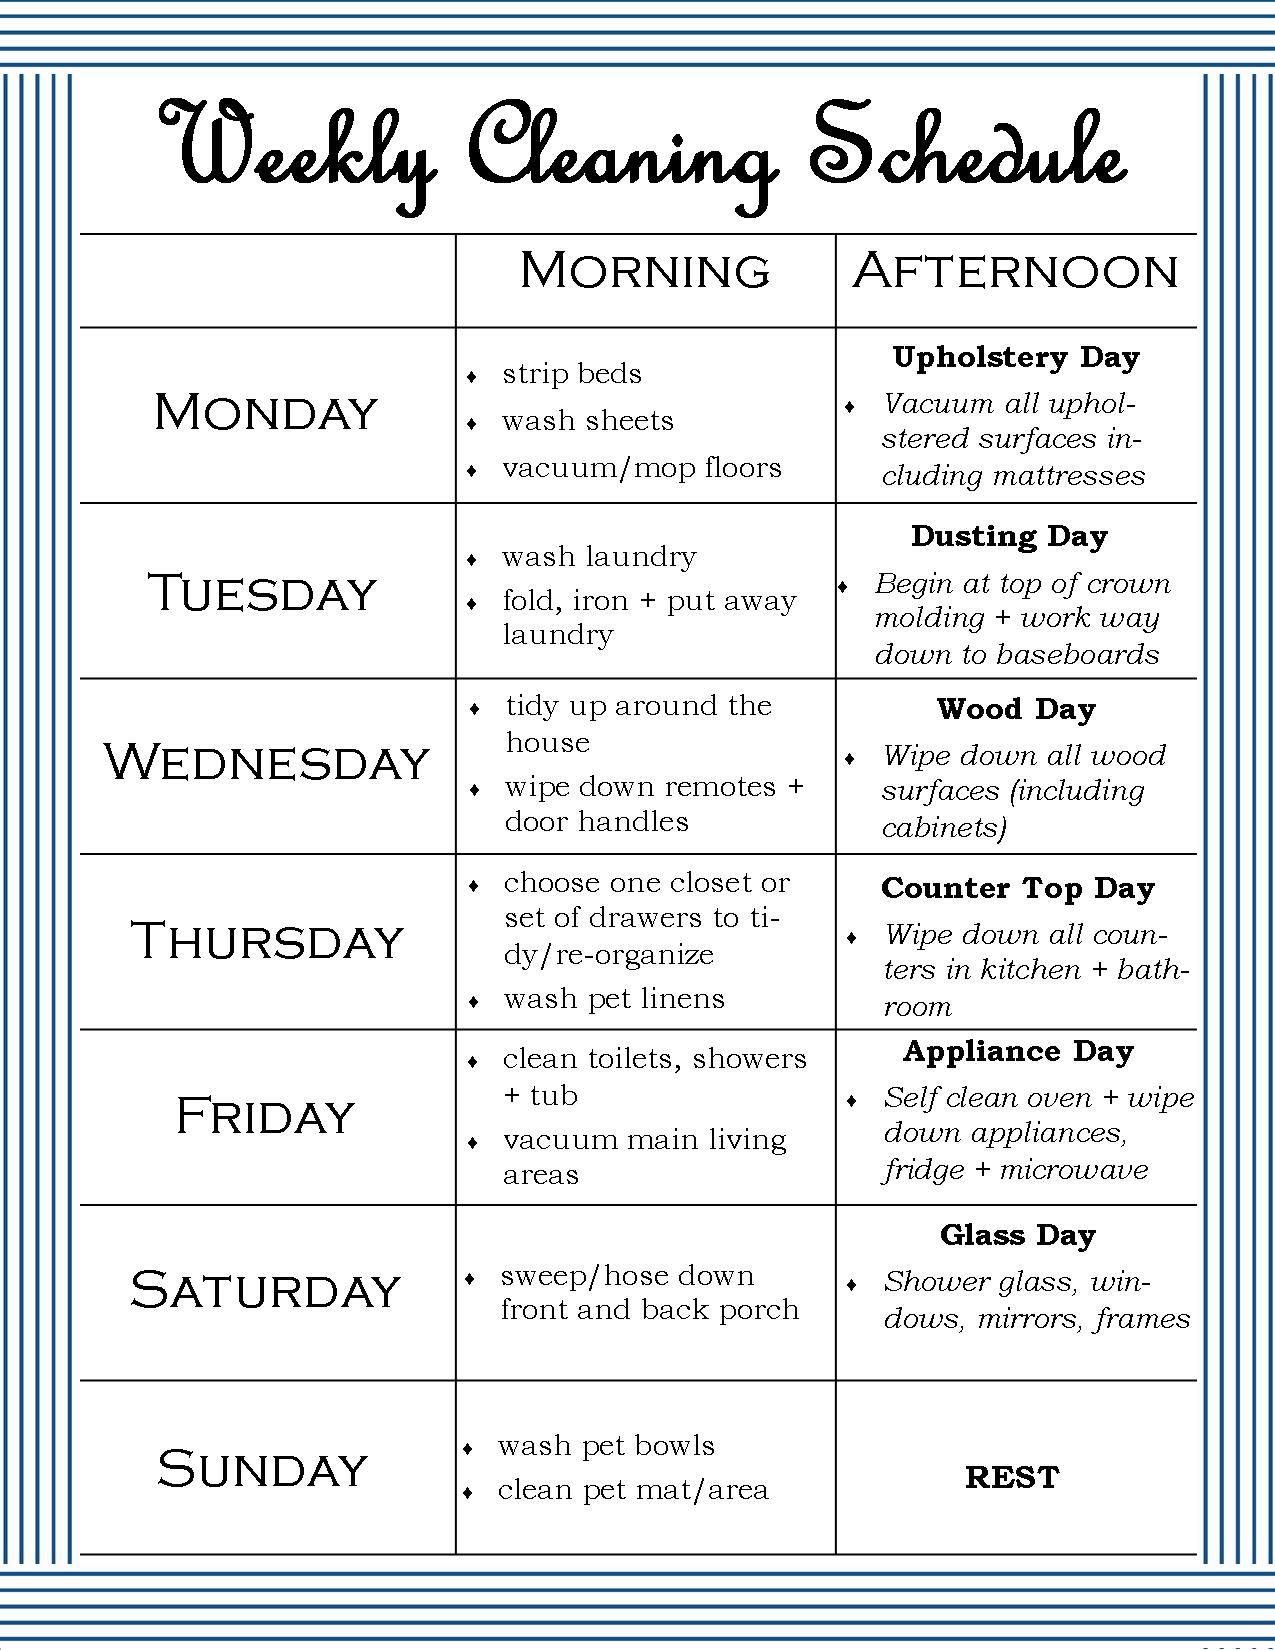 The Mrs With The Dishes Weekly Cleaning Schedule A